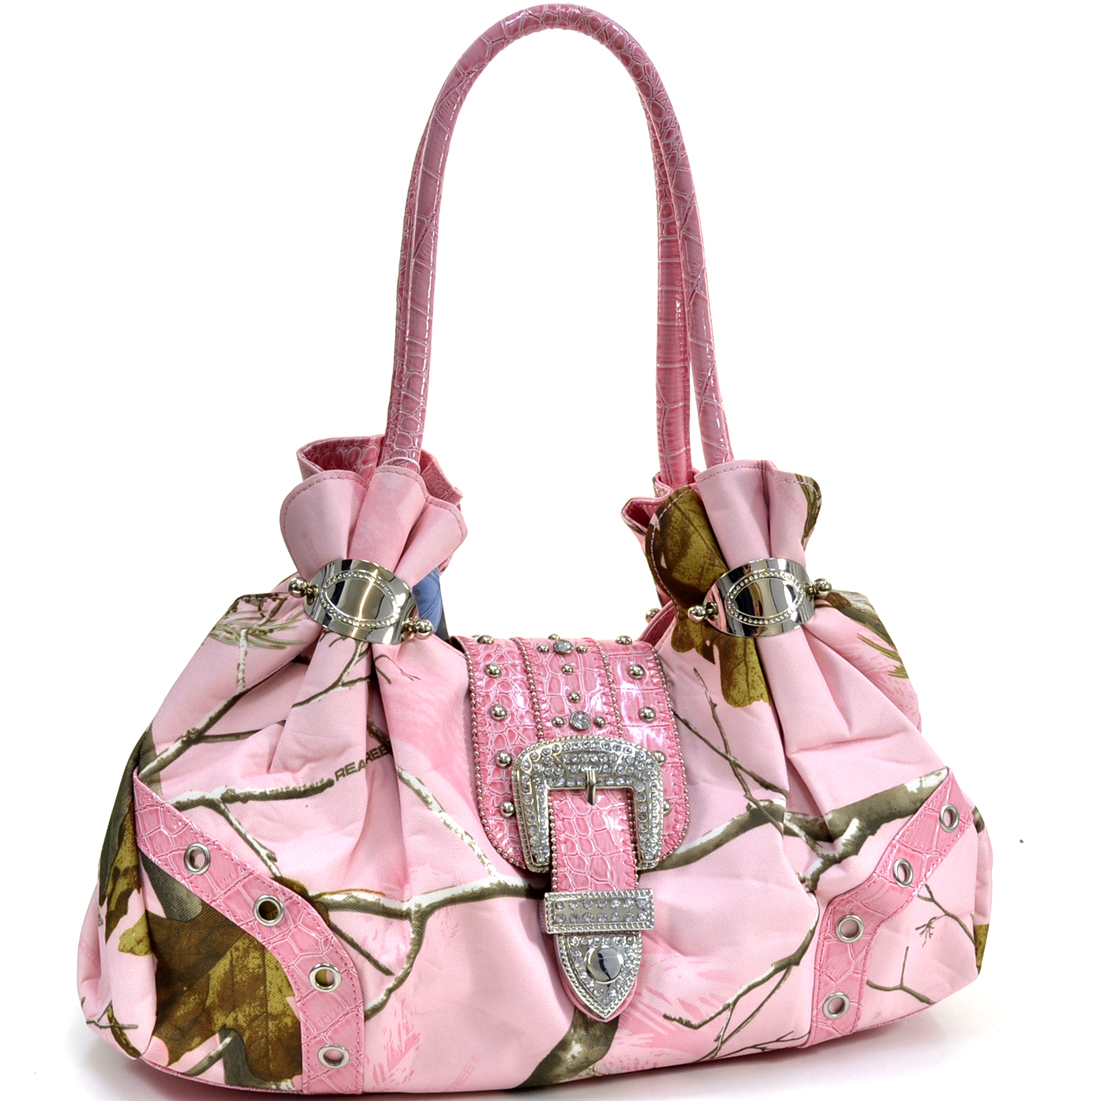 Realtree ® Camouflage Shoulder Bag w/ Rhinestone Buckle Accent - Camo/Light Pink